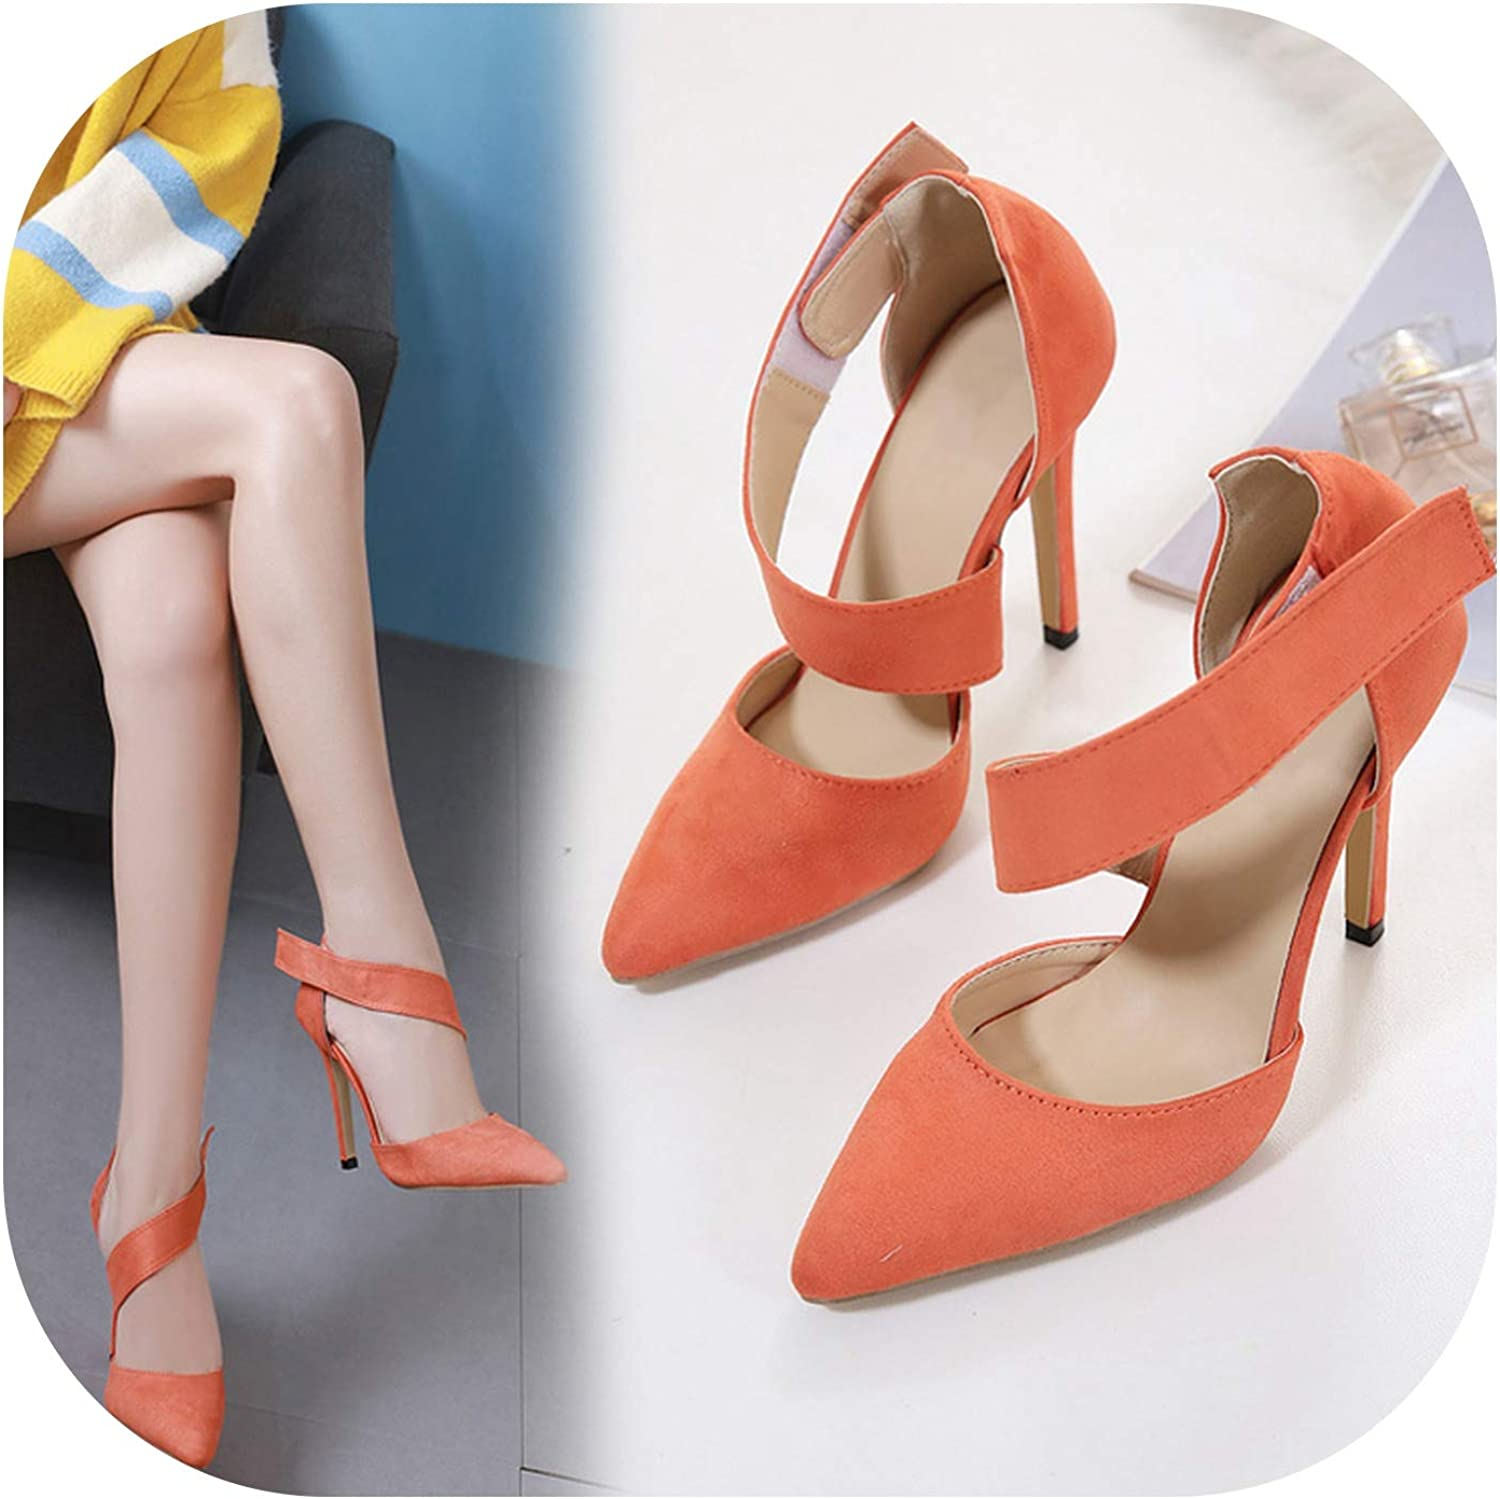 Shine-shine High Heel Sandals Pumps for Women Black orange 12cm